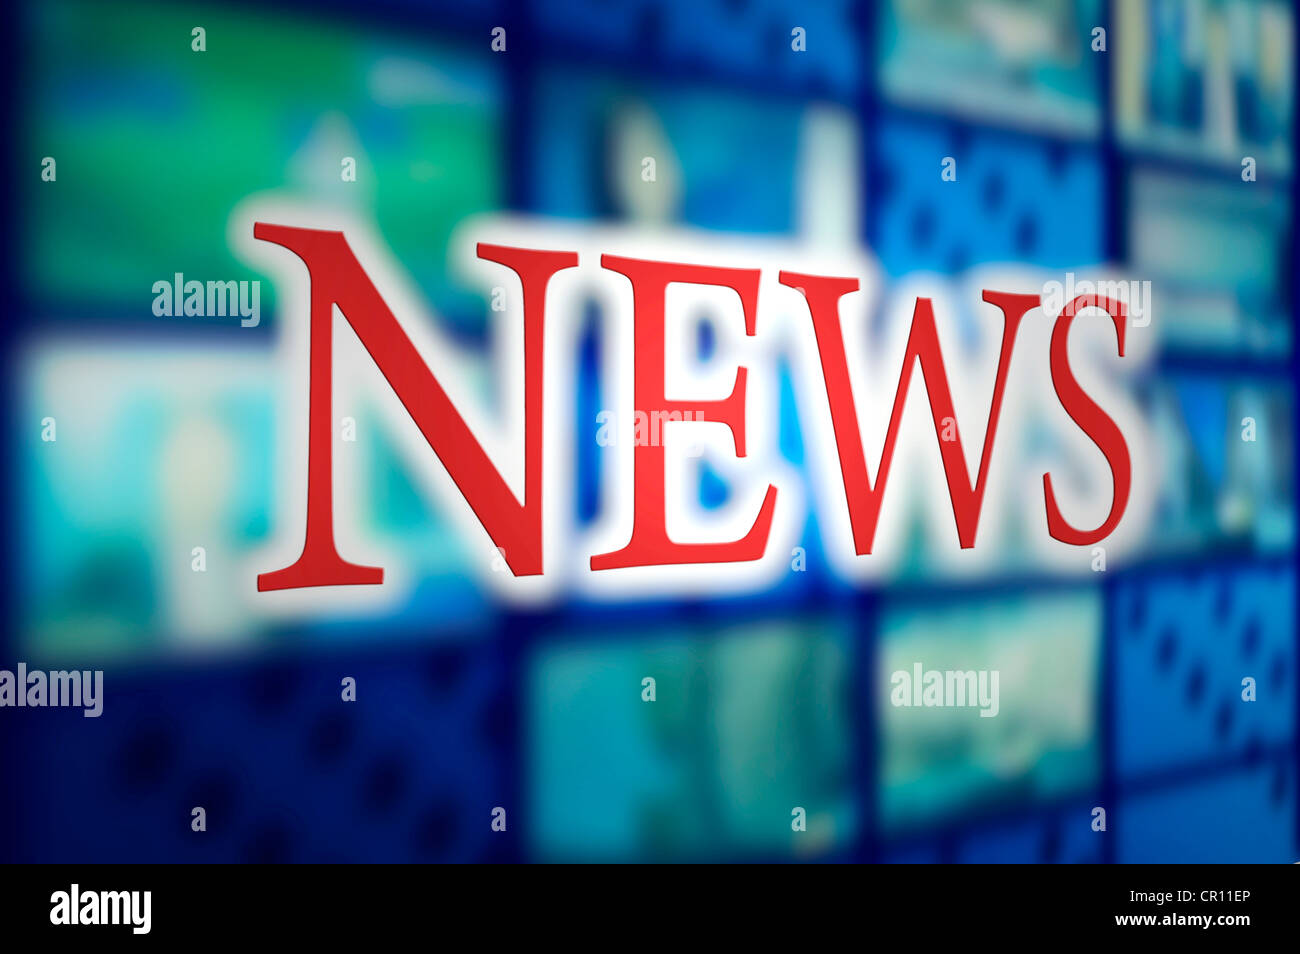 News sign in television studio against tv screens - Stock Image